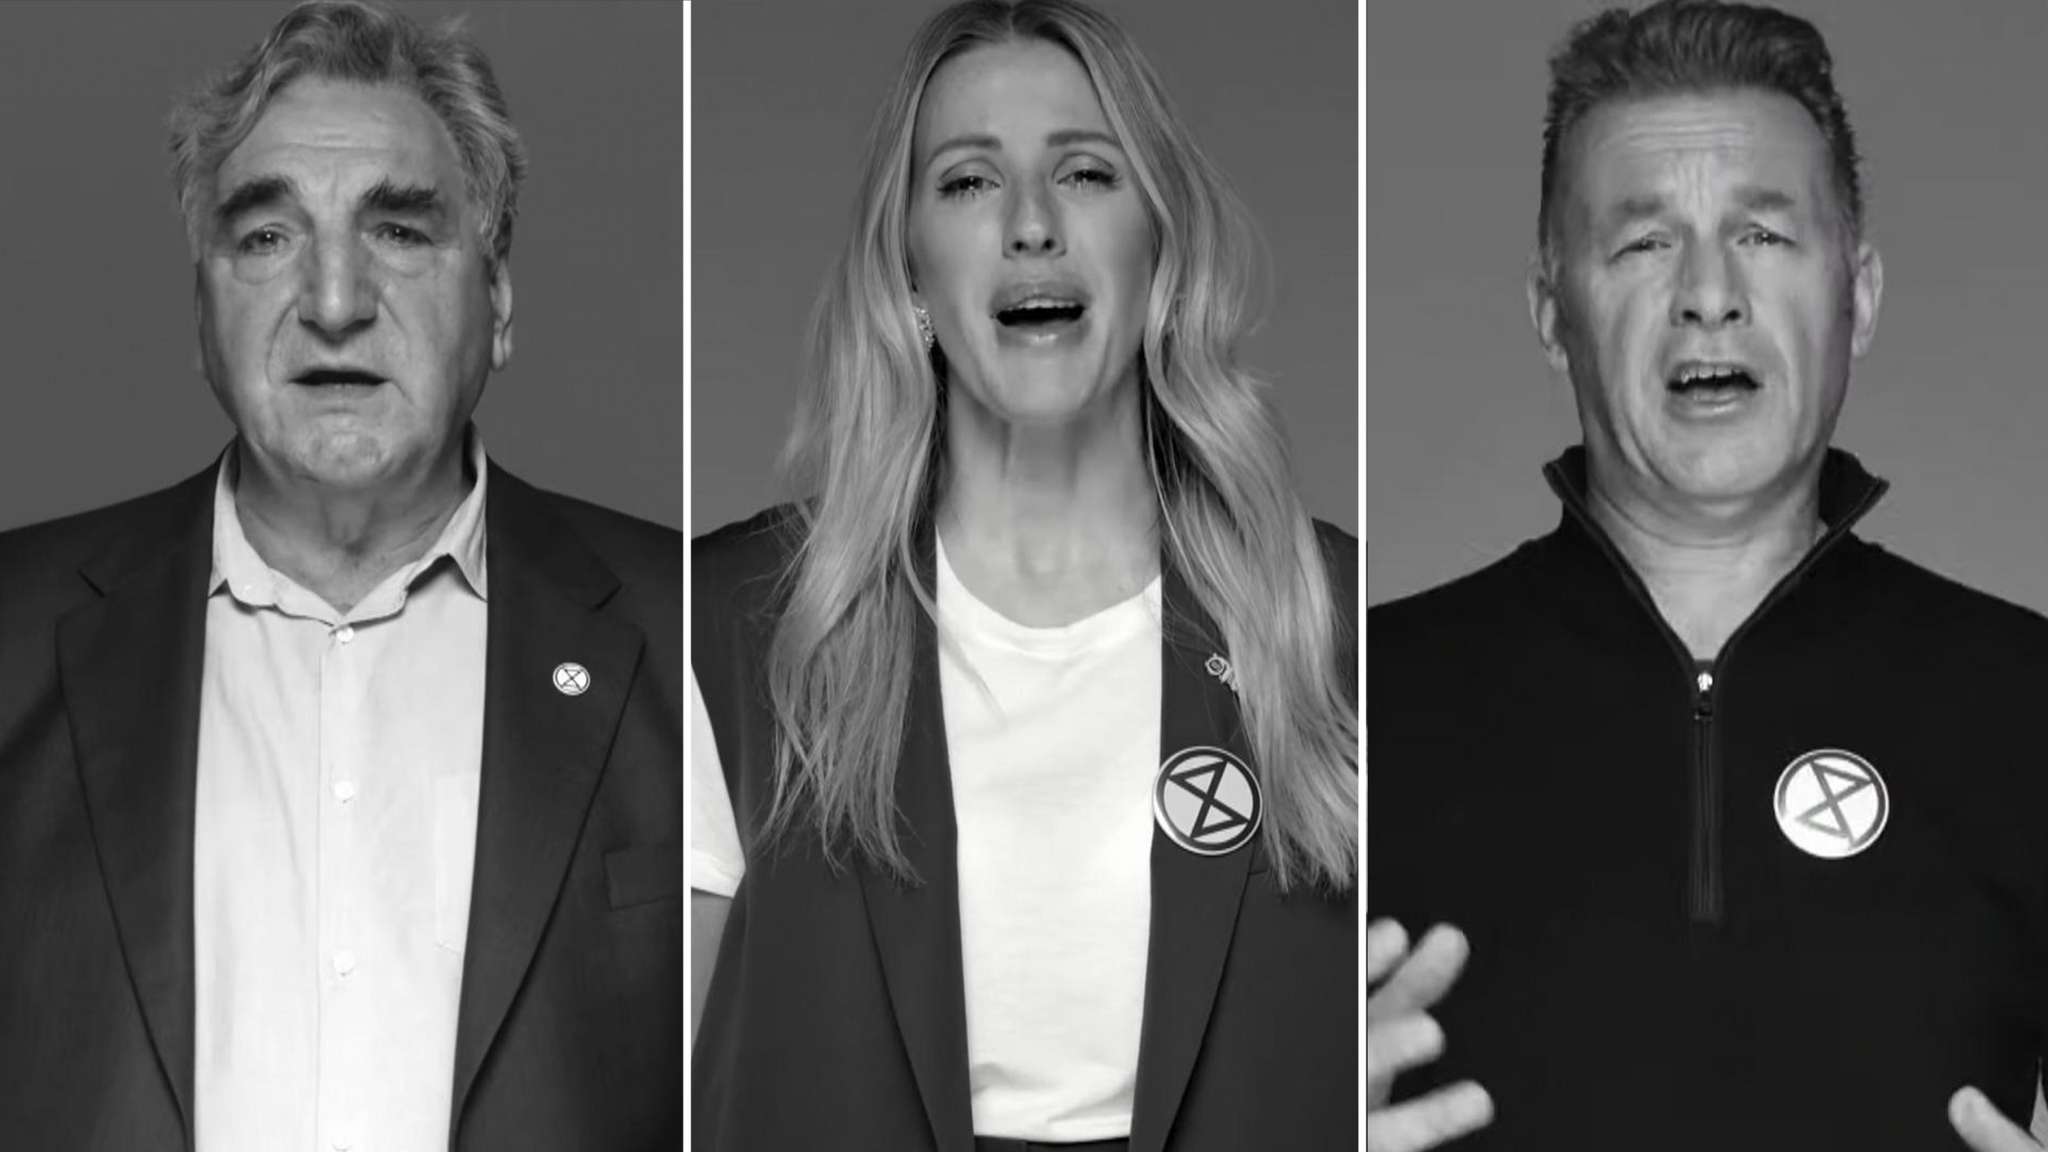 Extinction Rebellion: Celebs appear in video calling for climate action